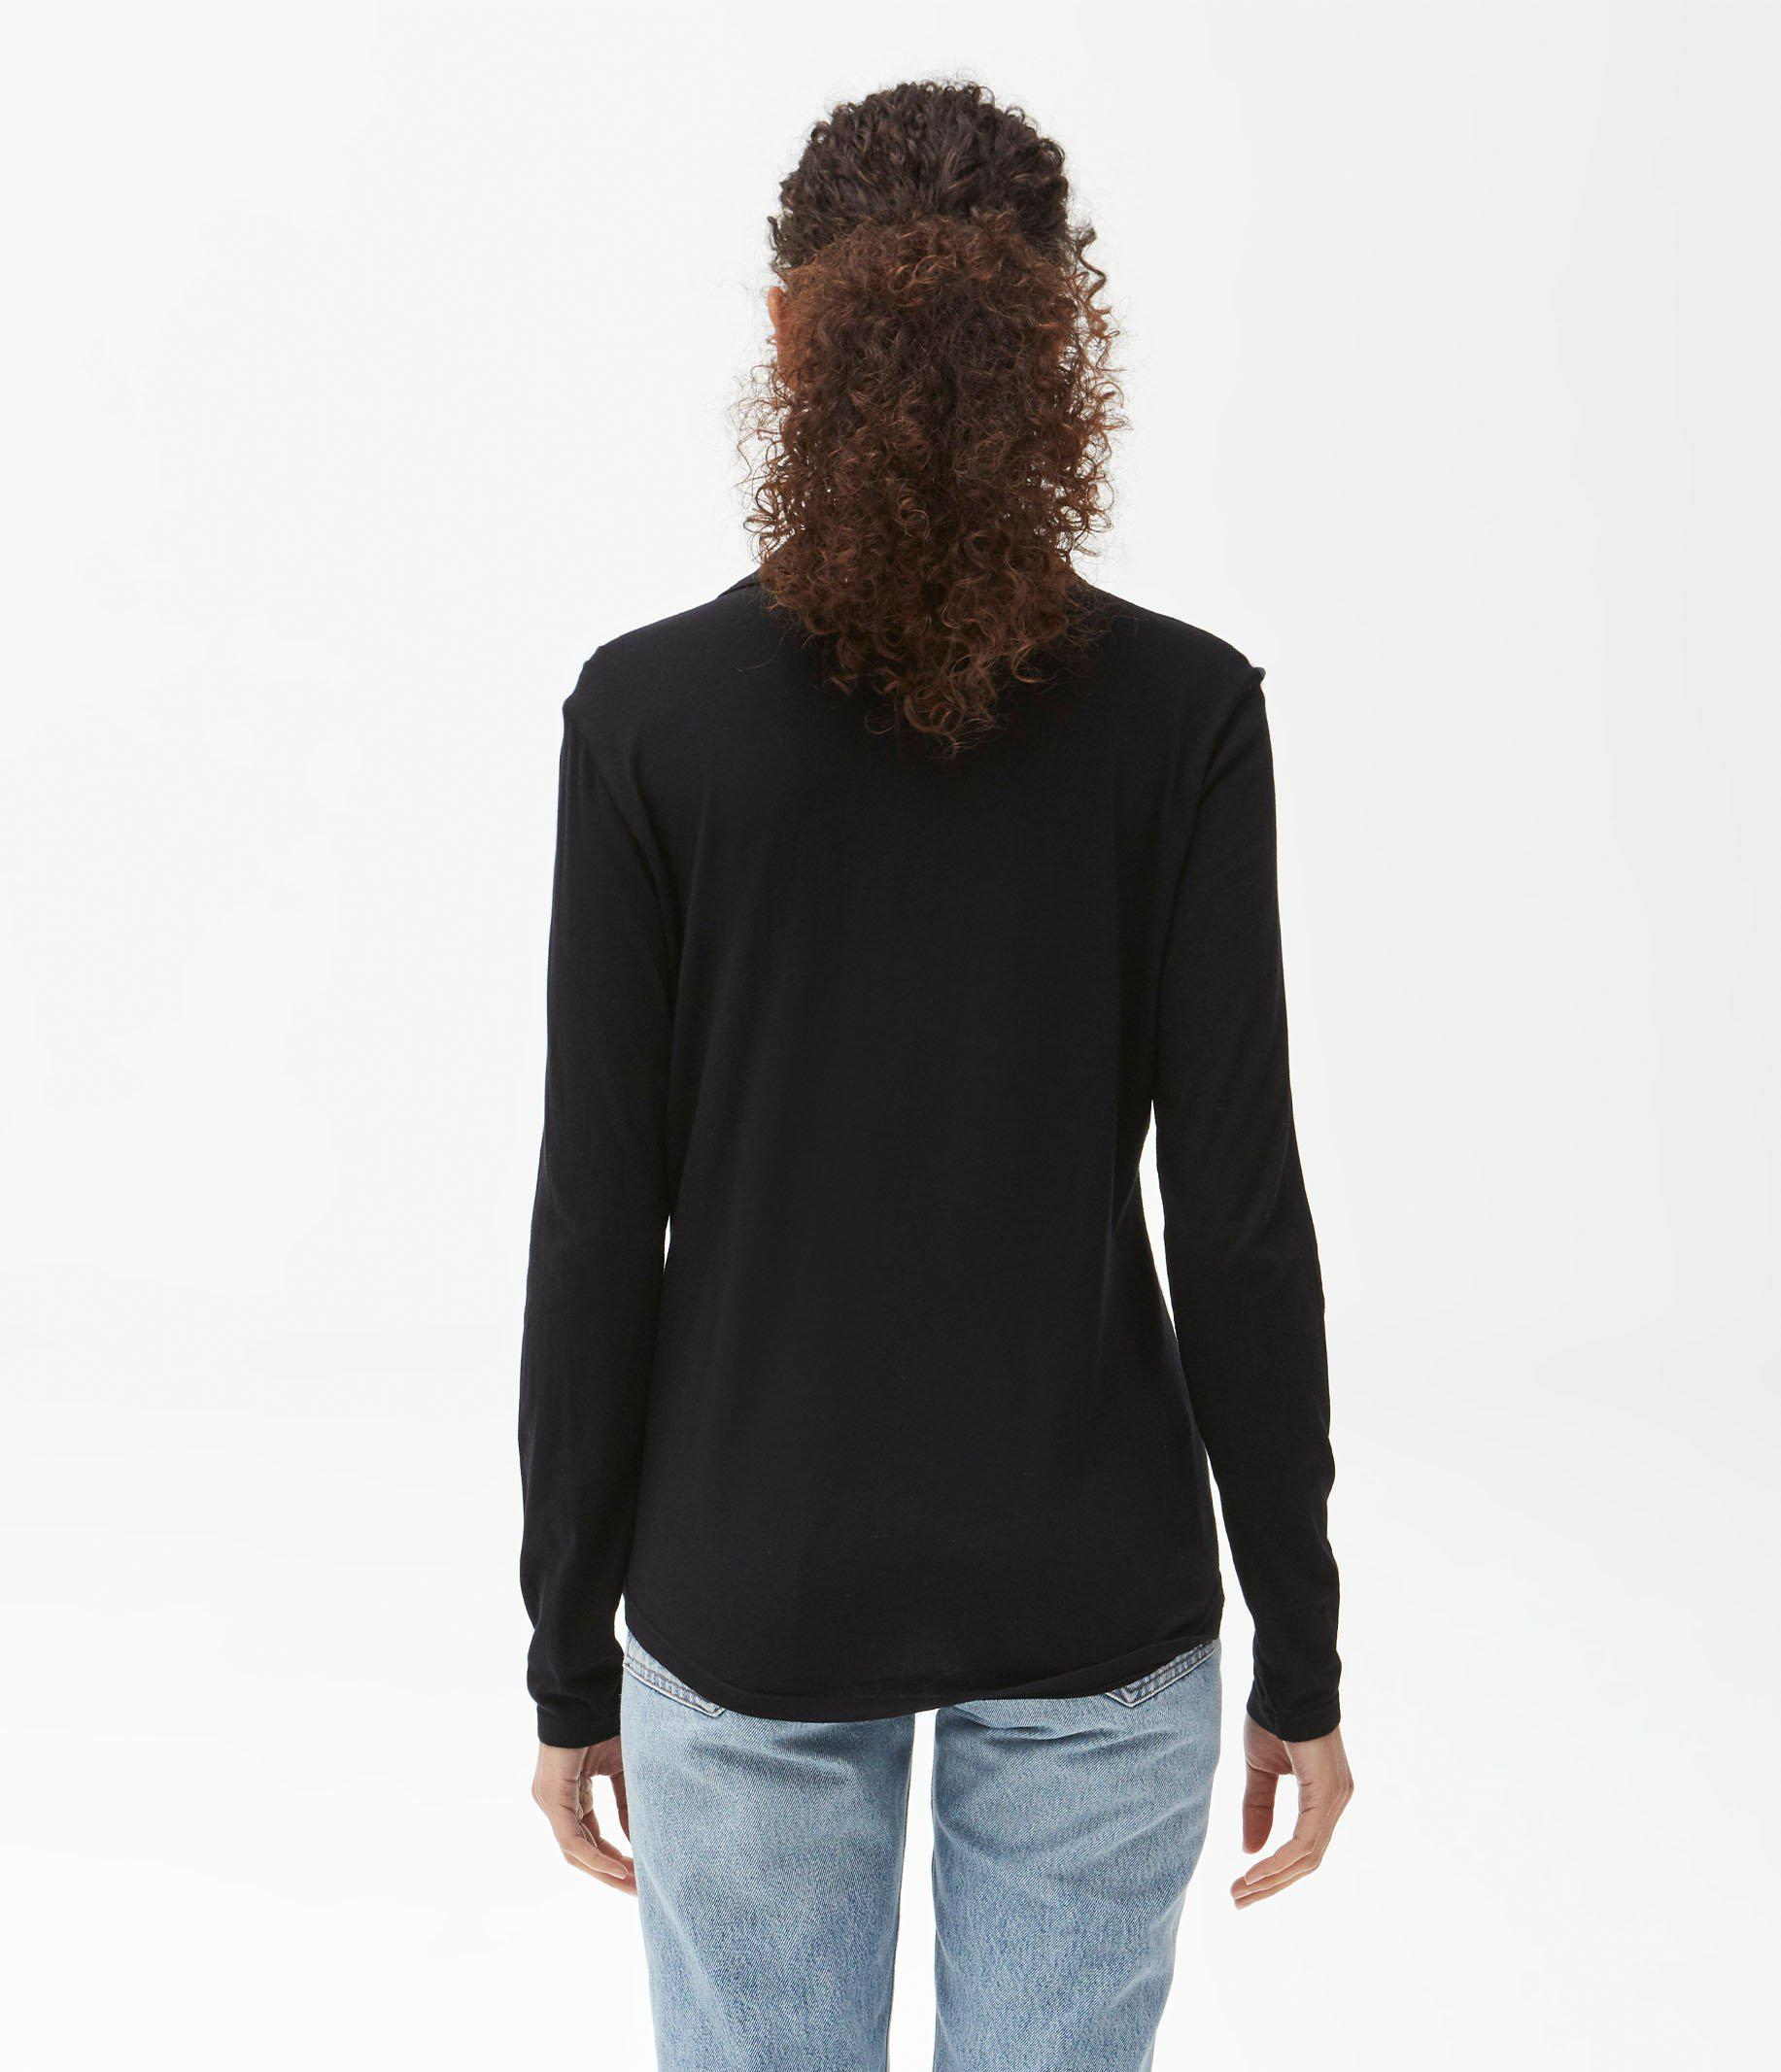 Harley Long Sleeve Button Up Top 3